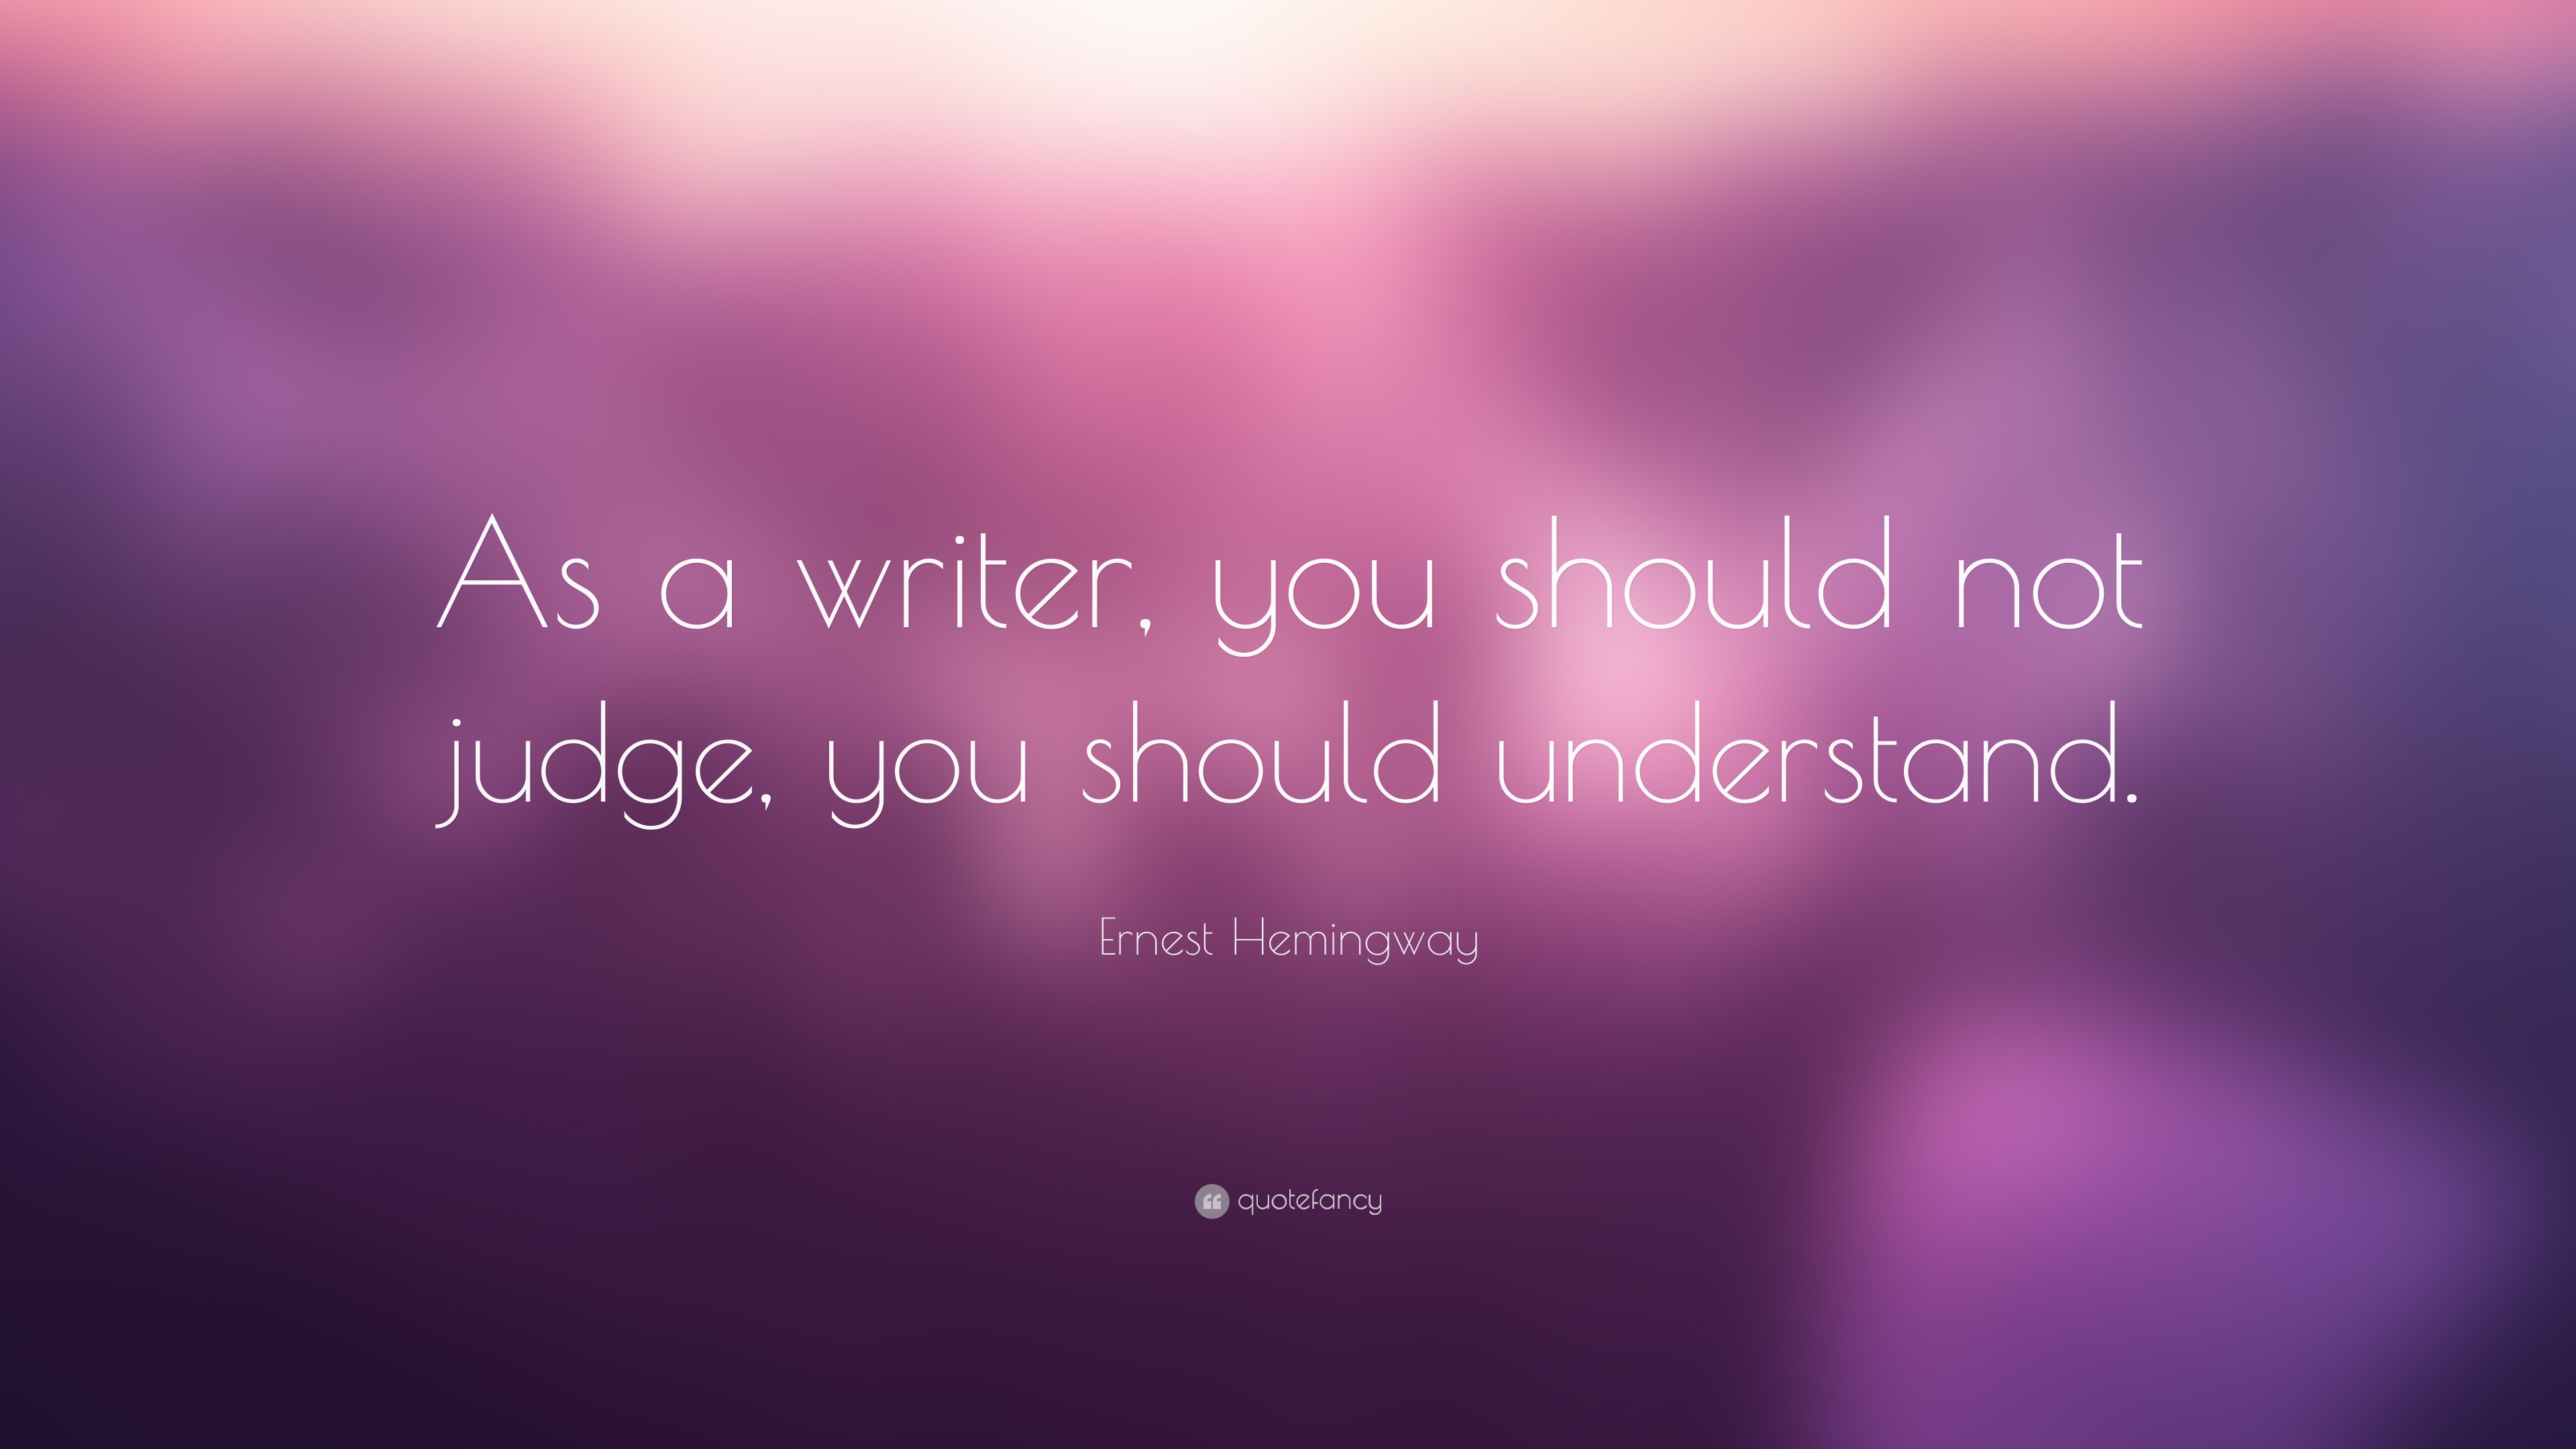 When should direct quotes be used by the writer?